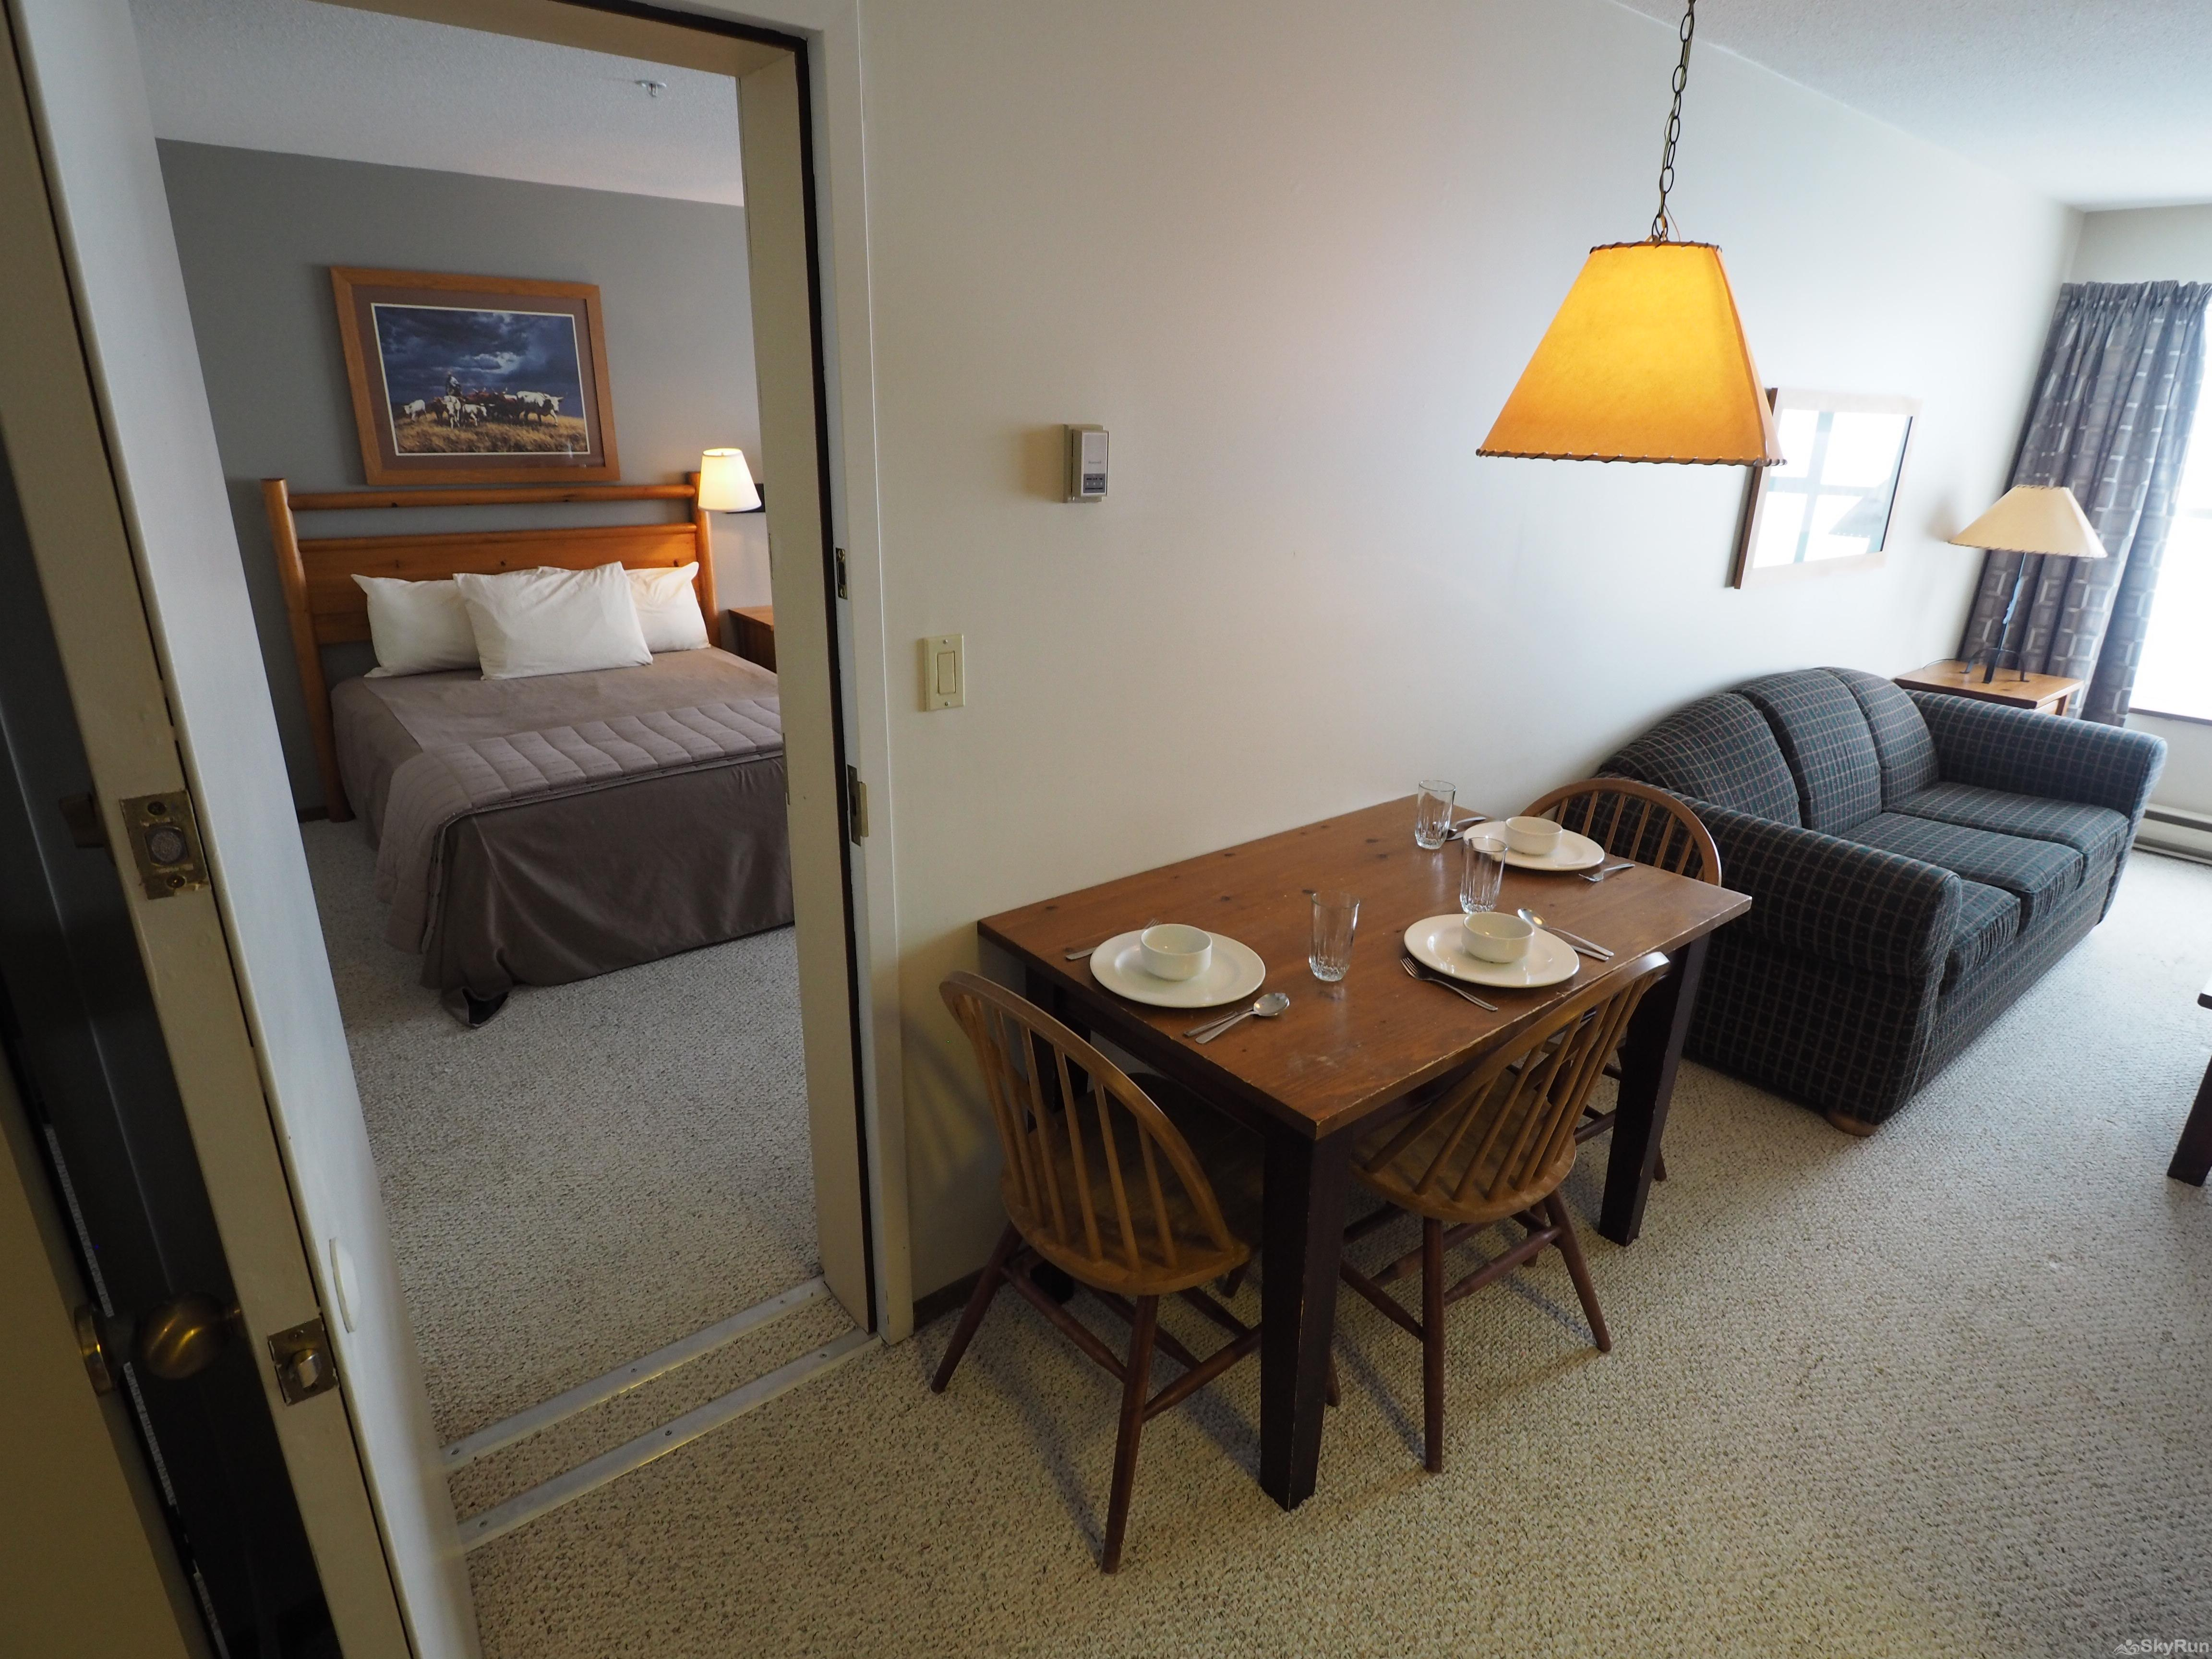 Apex Mountain Inn 1 BDRM Suite 323-324 Bedroom/dining room